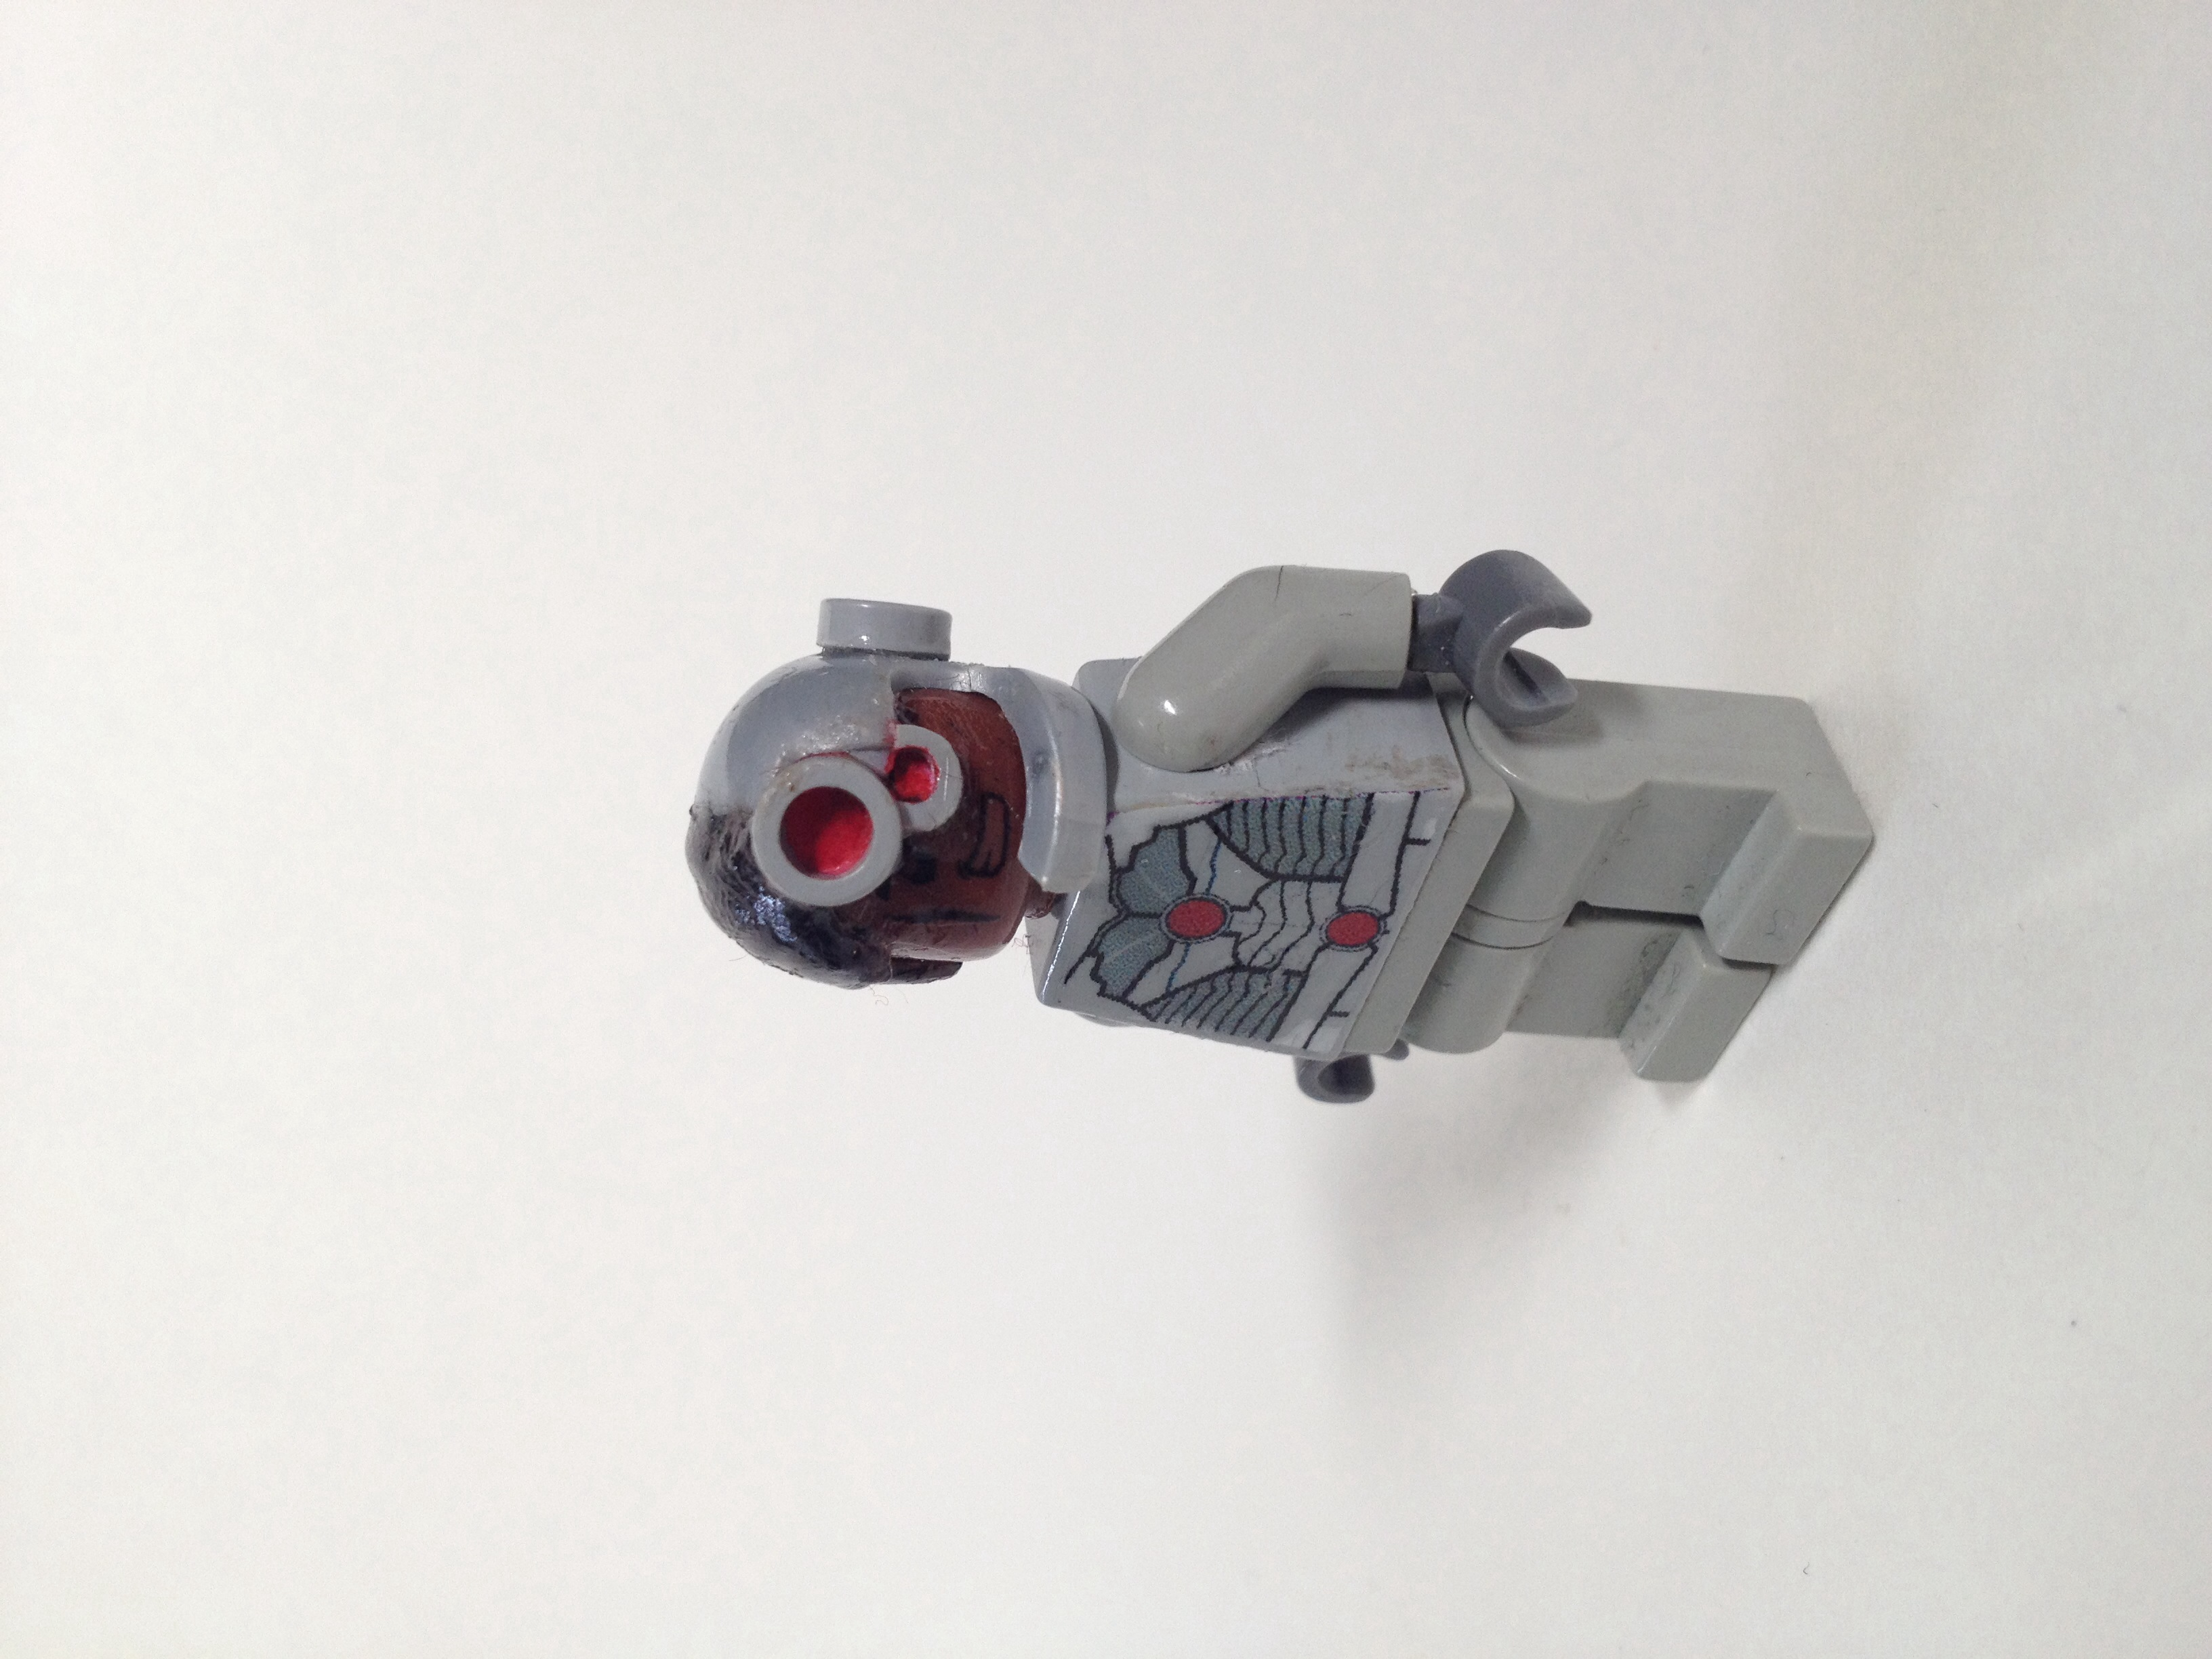 LEGO Cyborg Decals - Bing images